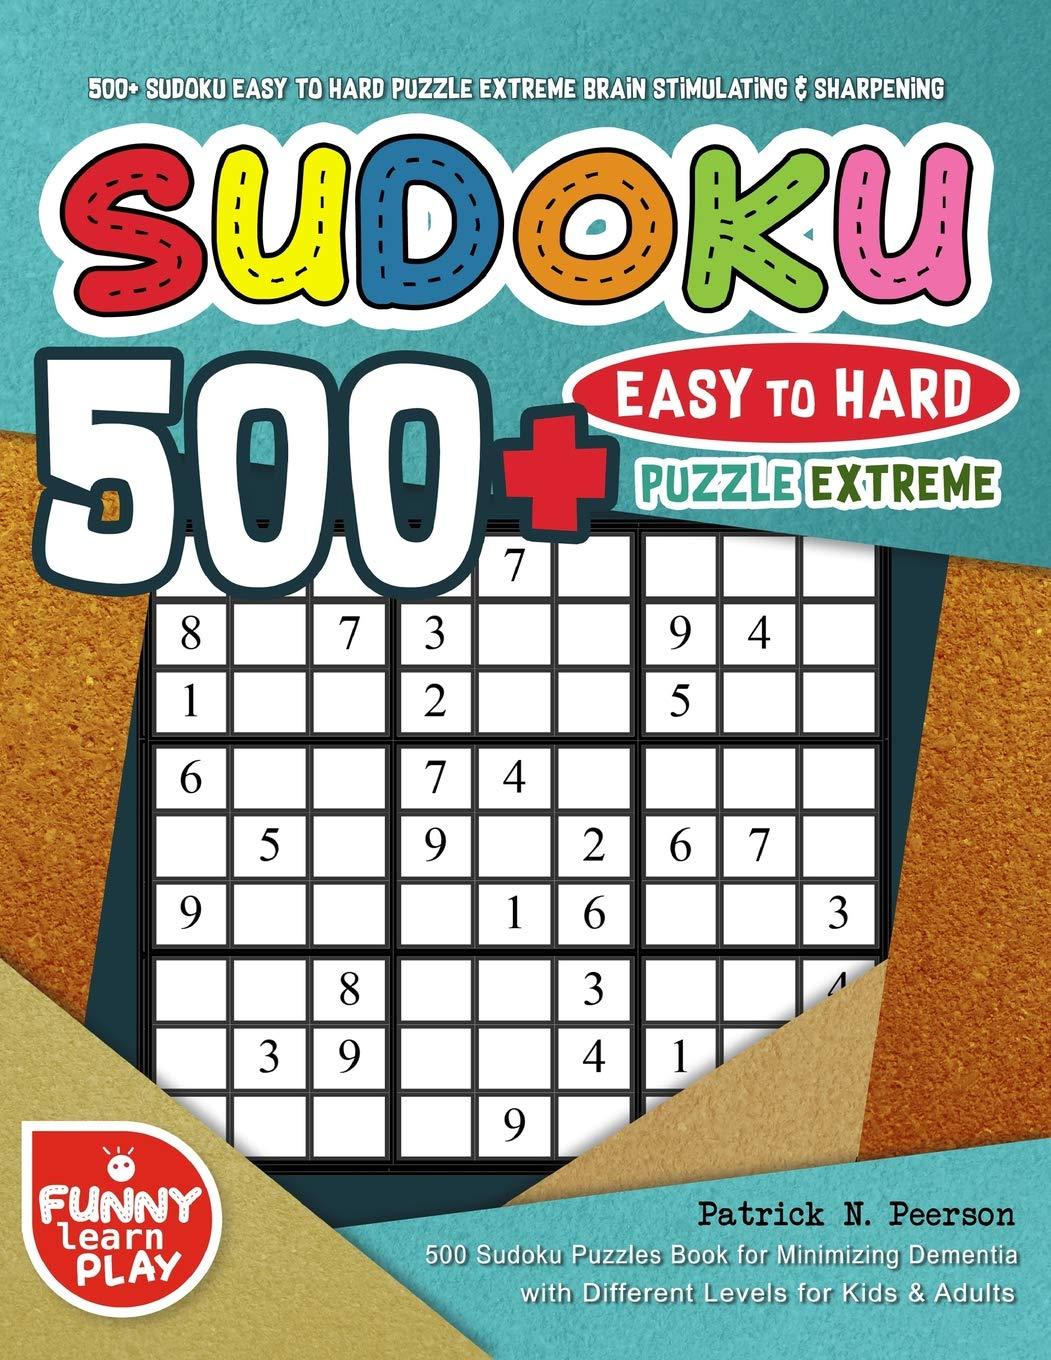 Download 500+ Sudoku Easy to Hard Puzzle Extreme Brain Stimulating & Sharpening: 500 Sudoku Puzzles Book for Minimizing Dementia with Different Levels for Kids ... (Sudoku Puzzles Books Large Print) (Volume 5) pdf